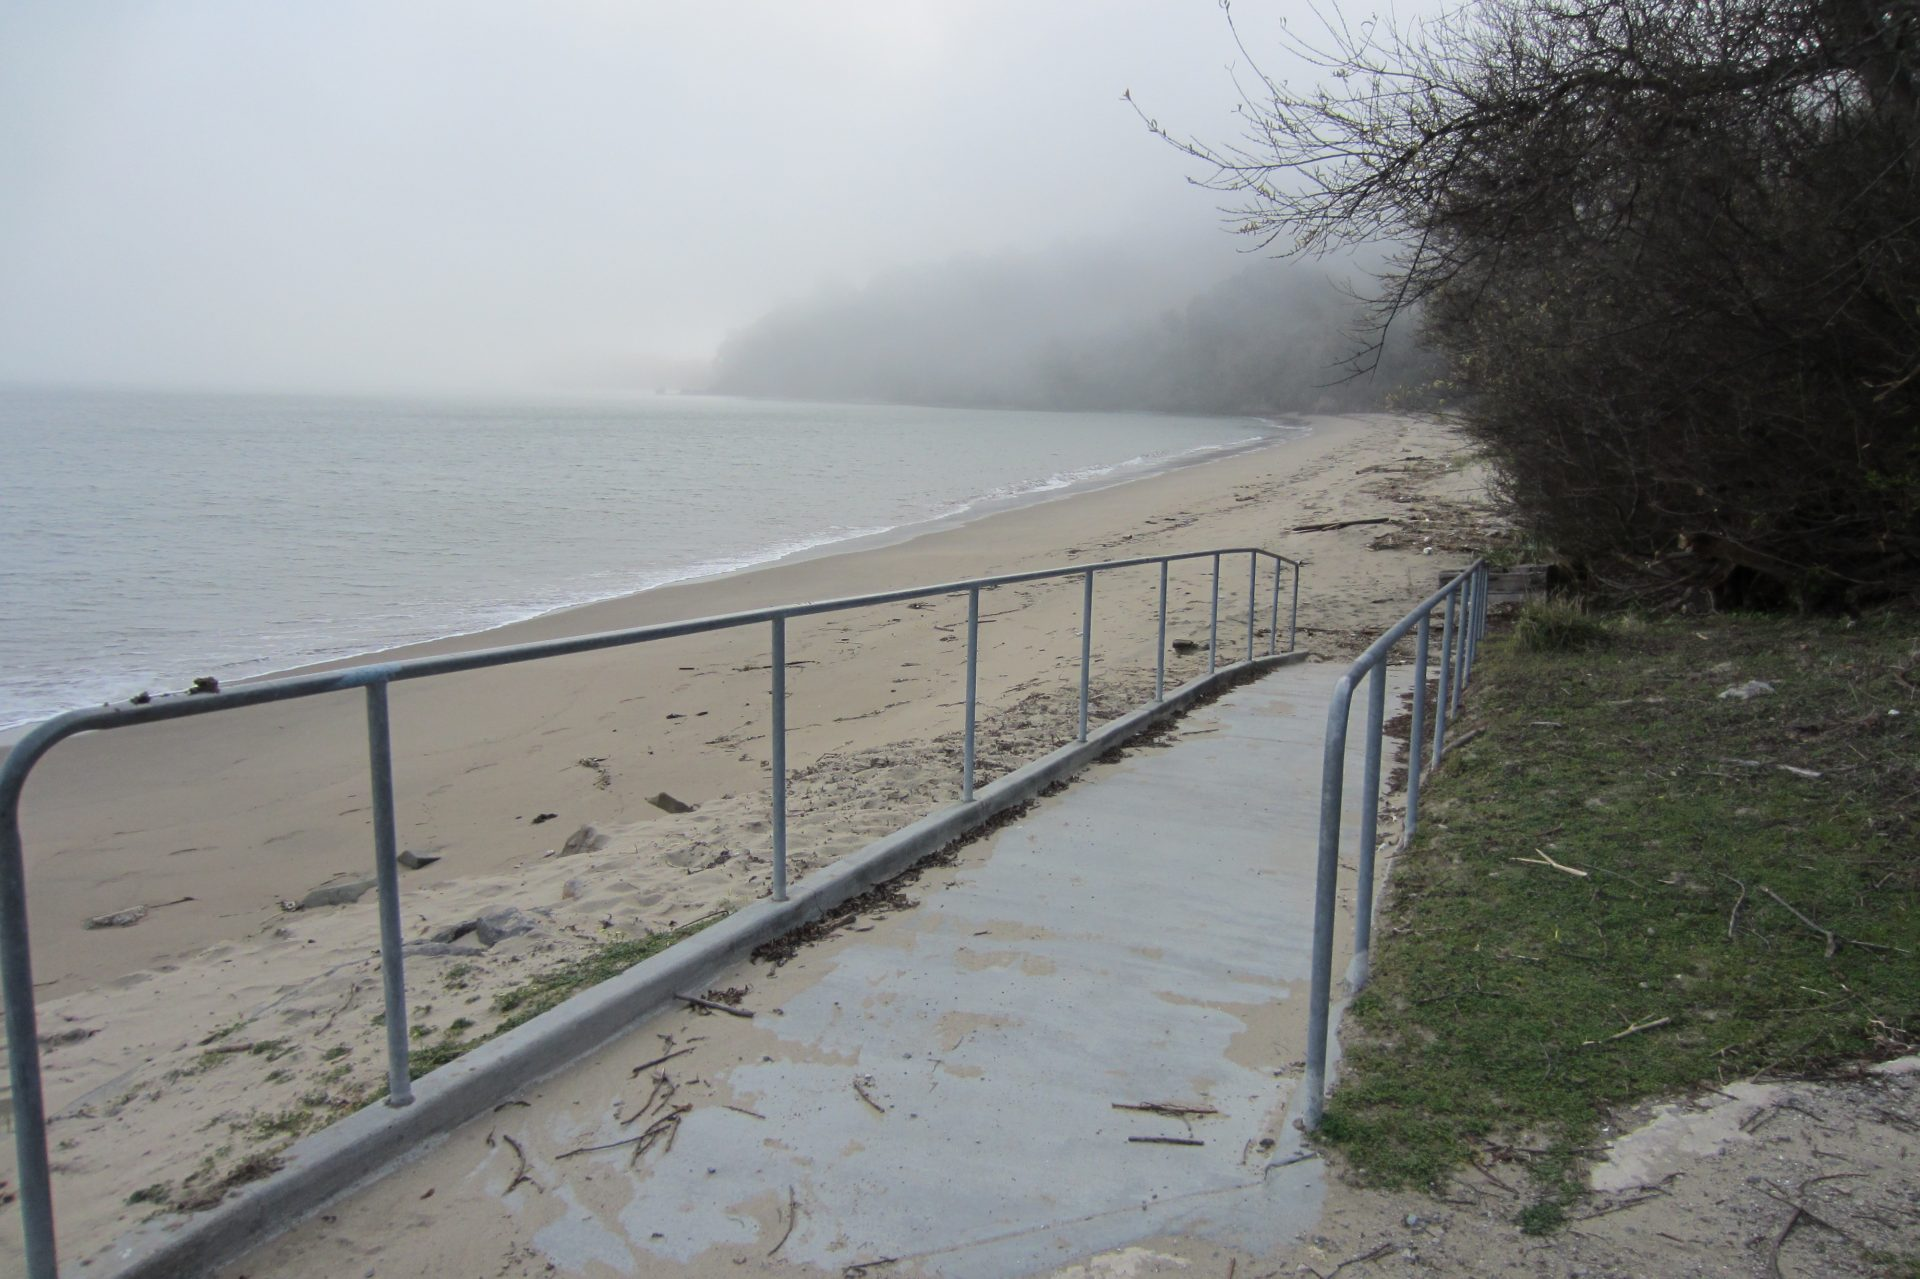 Concrete ramp with railings down to beach